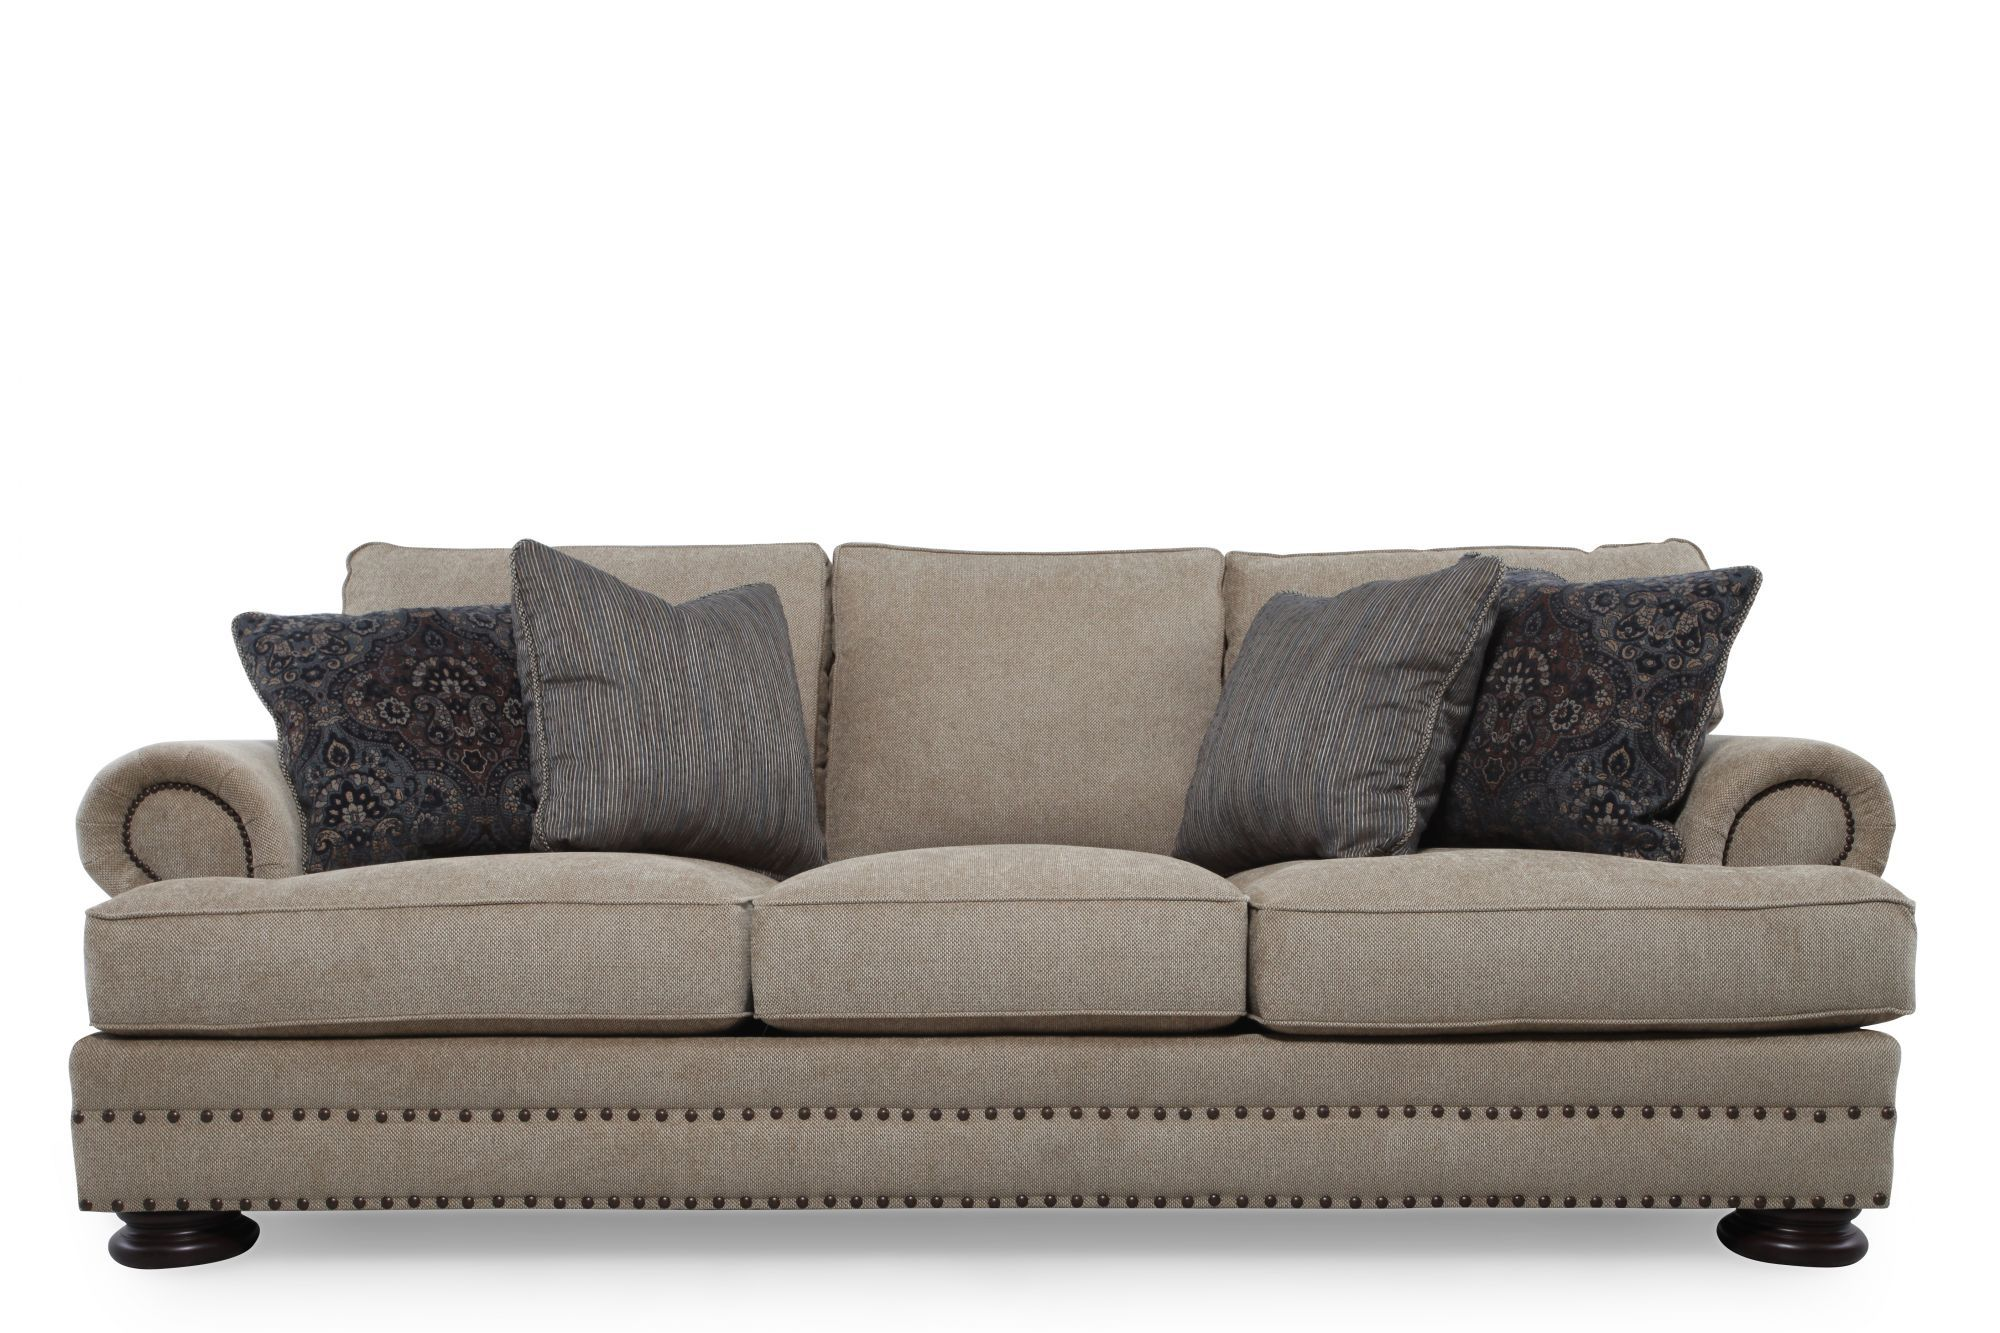 Mathis Brothers Living Room Furniture | Living Room | Pinterest | Leather  Sofas, Living Room Furniture And Living Rooms